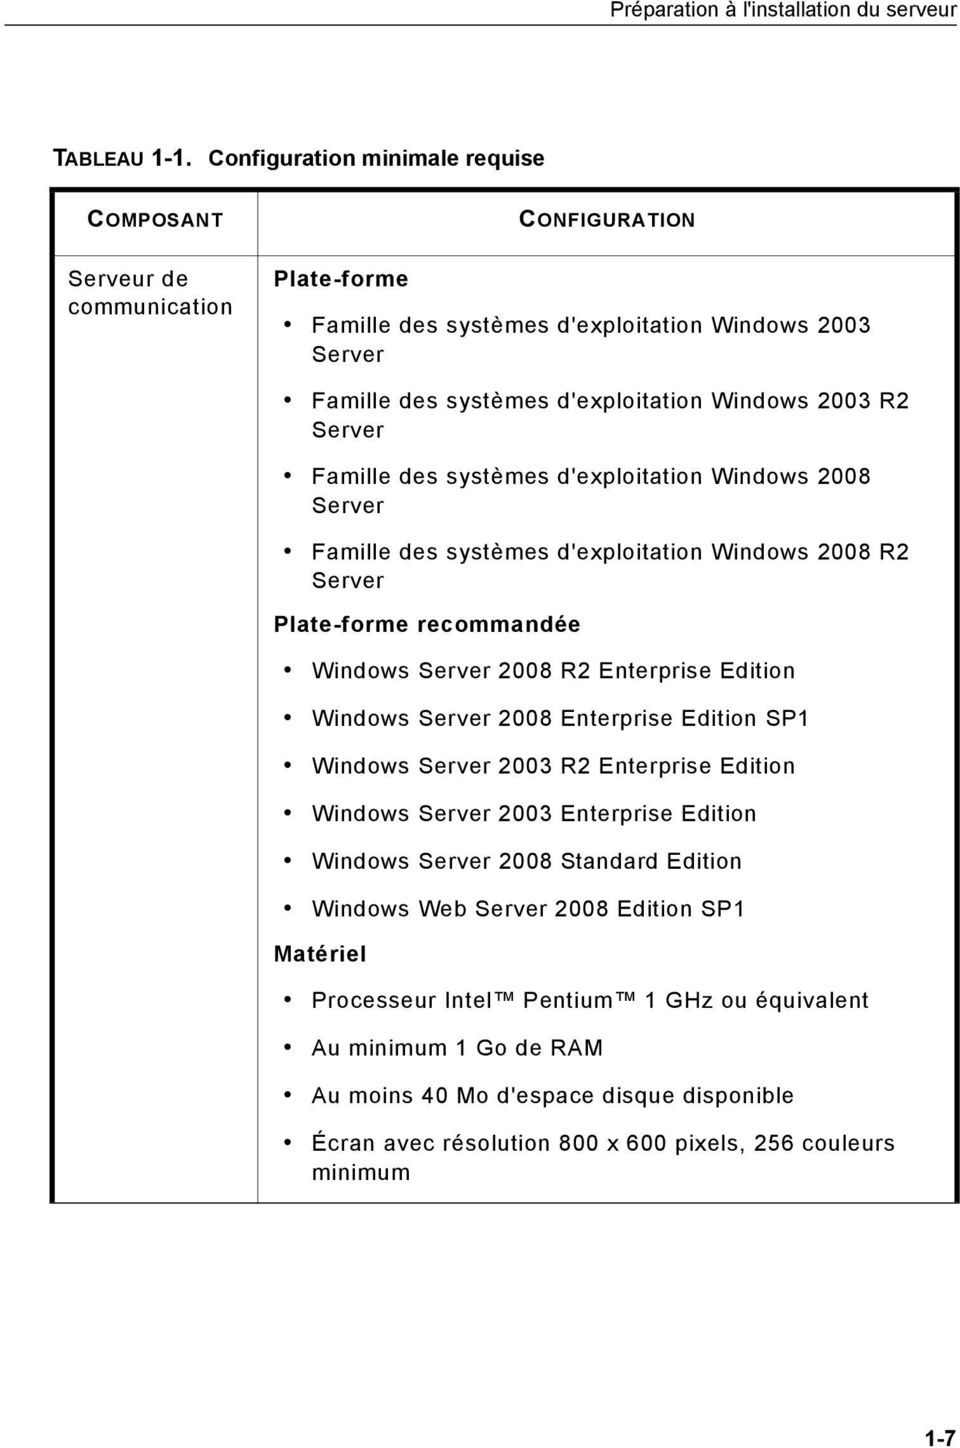 Server Famille des systèmes d'exploitation Windows 2008 Server Famille des systèmes d'exploitation Windows 2008 R2 Server Plate-forme recommandée Windows Server 2008 R2 Enterprise Edition Windows